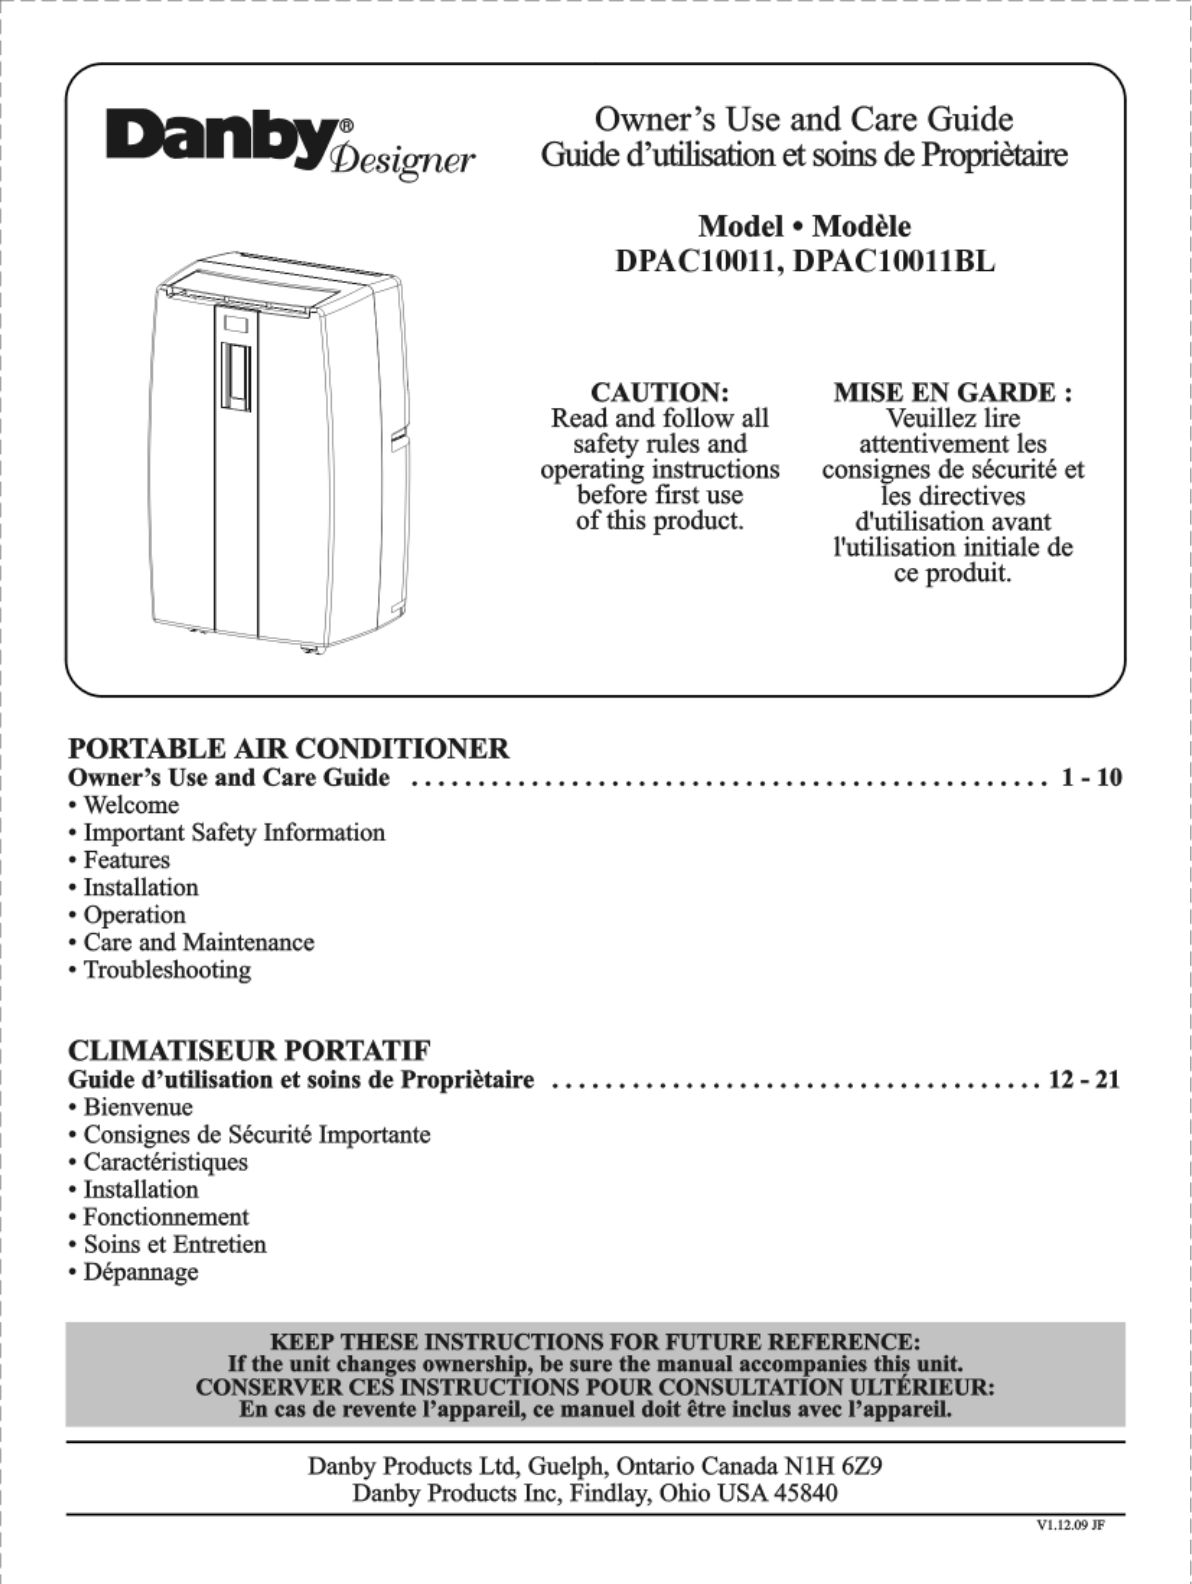 danby air conditioner dpac10011 user guide manualsonline com